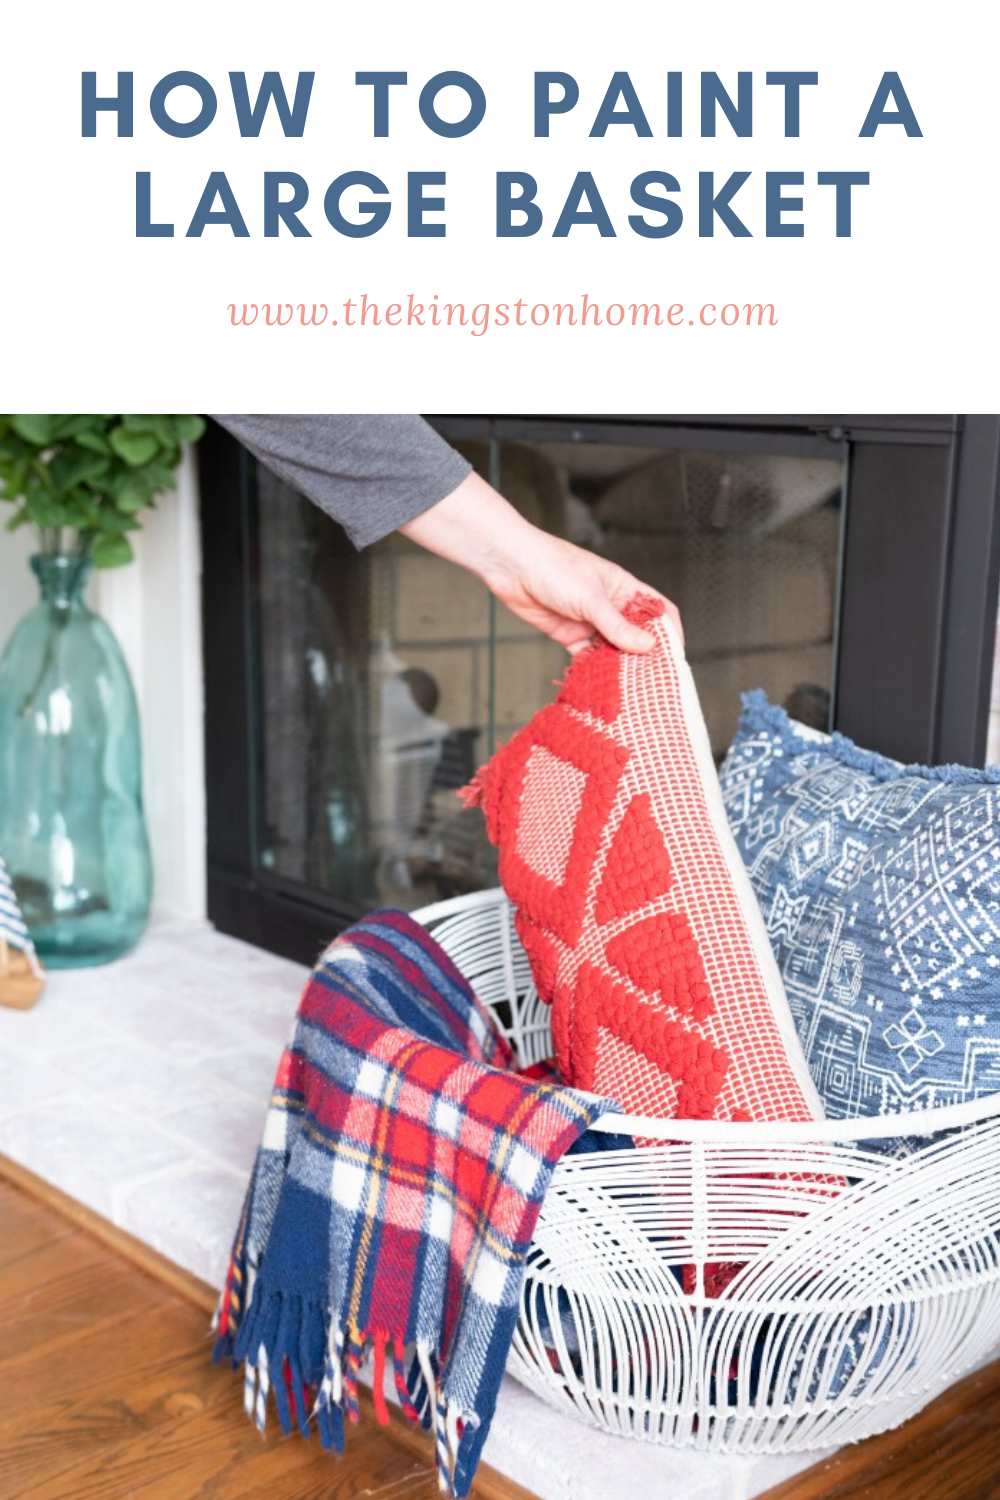 DIY Farmhouse Decor How to Paint a Large Basket - The Kingston Home: Have you been stuck inside too long, that you are getting tired of your current home decor? If so, then learn how easy it is to create customized home decor using the items you already own and some Rust-oleum spray paint! via @craftykingstons